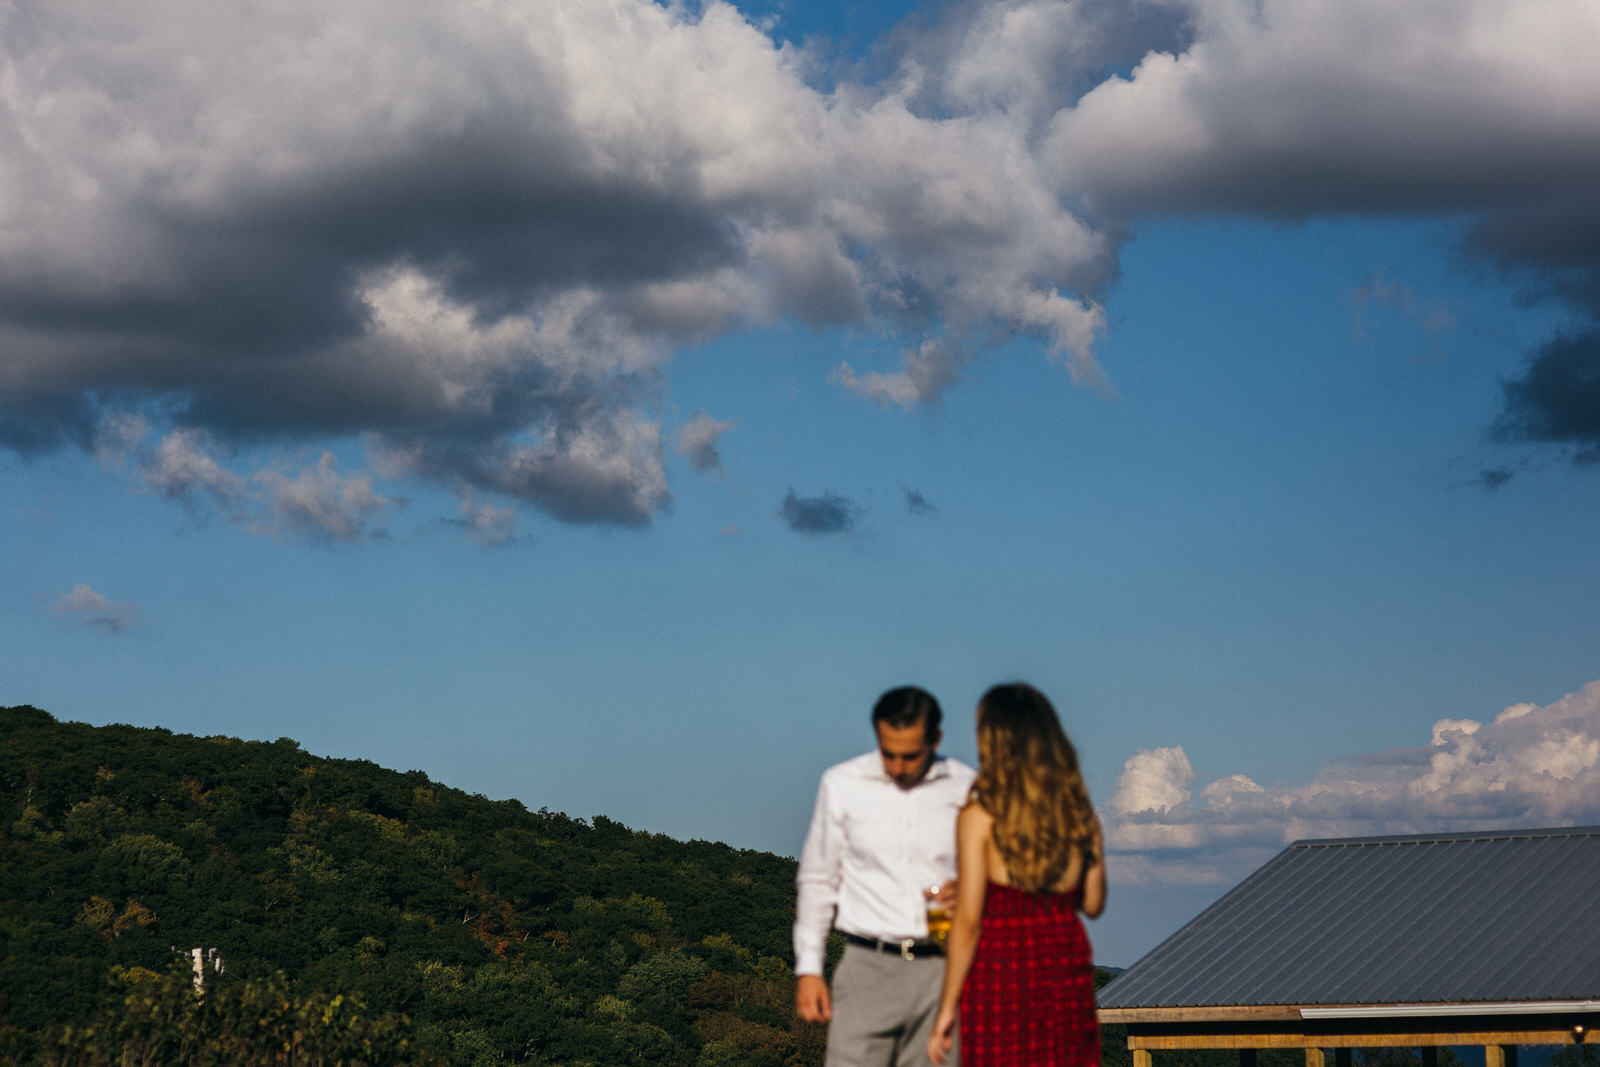 Portland Seattle North Carolina Overlook Barn destination wedding photographer0121.JPG